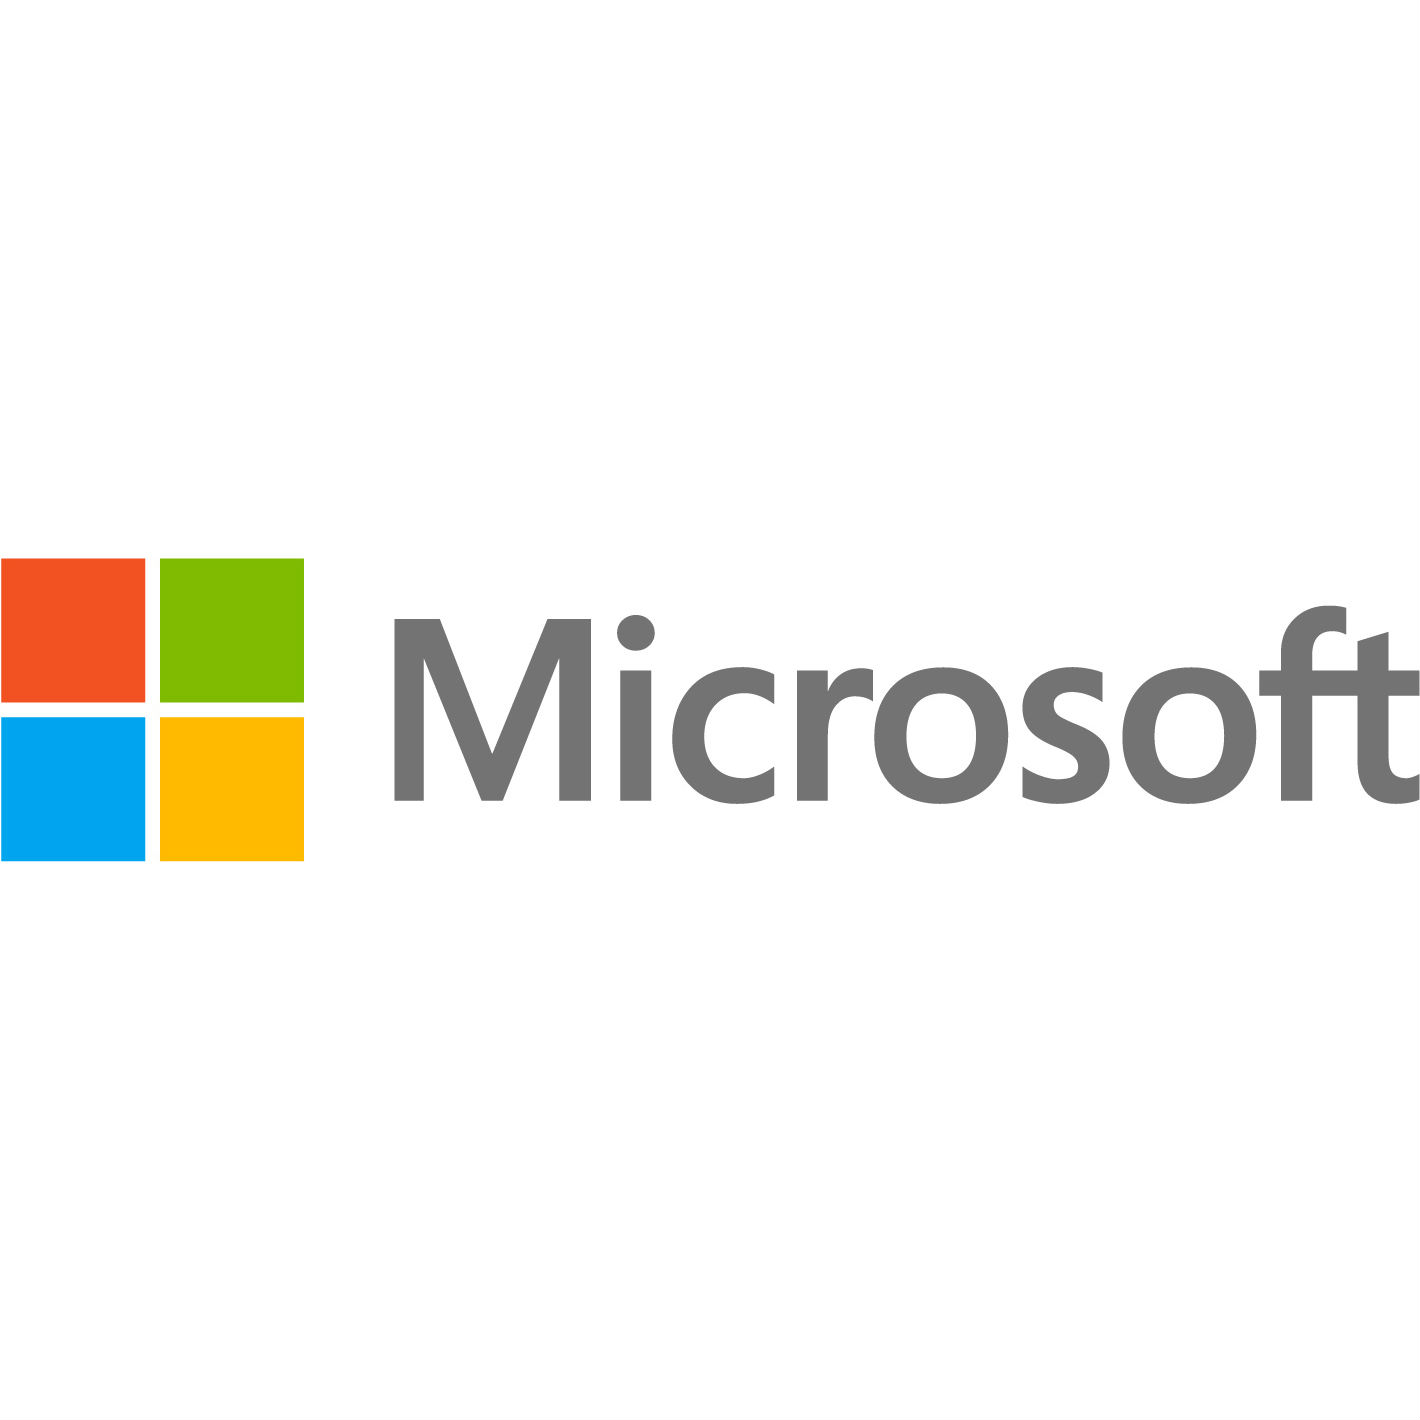 Microsoft   Microsoft enables digital transformation for the era of an intelligent cloud and an intelligent edge. Its mission is to empower every person and every organization on the planet to achieve more.